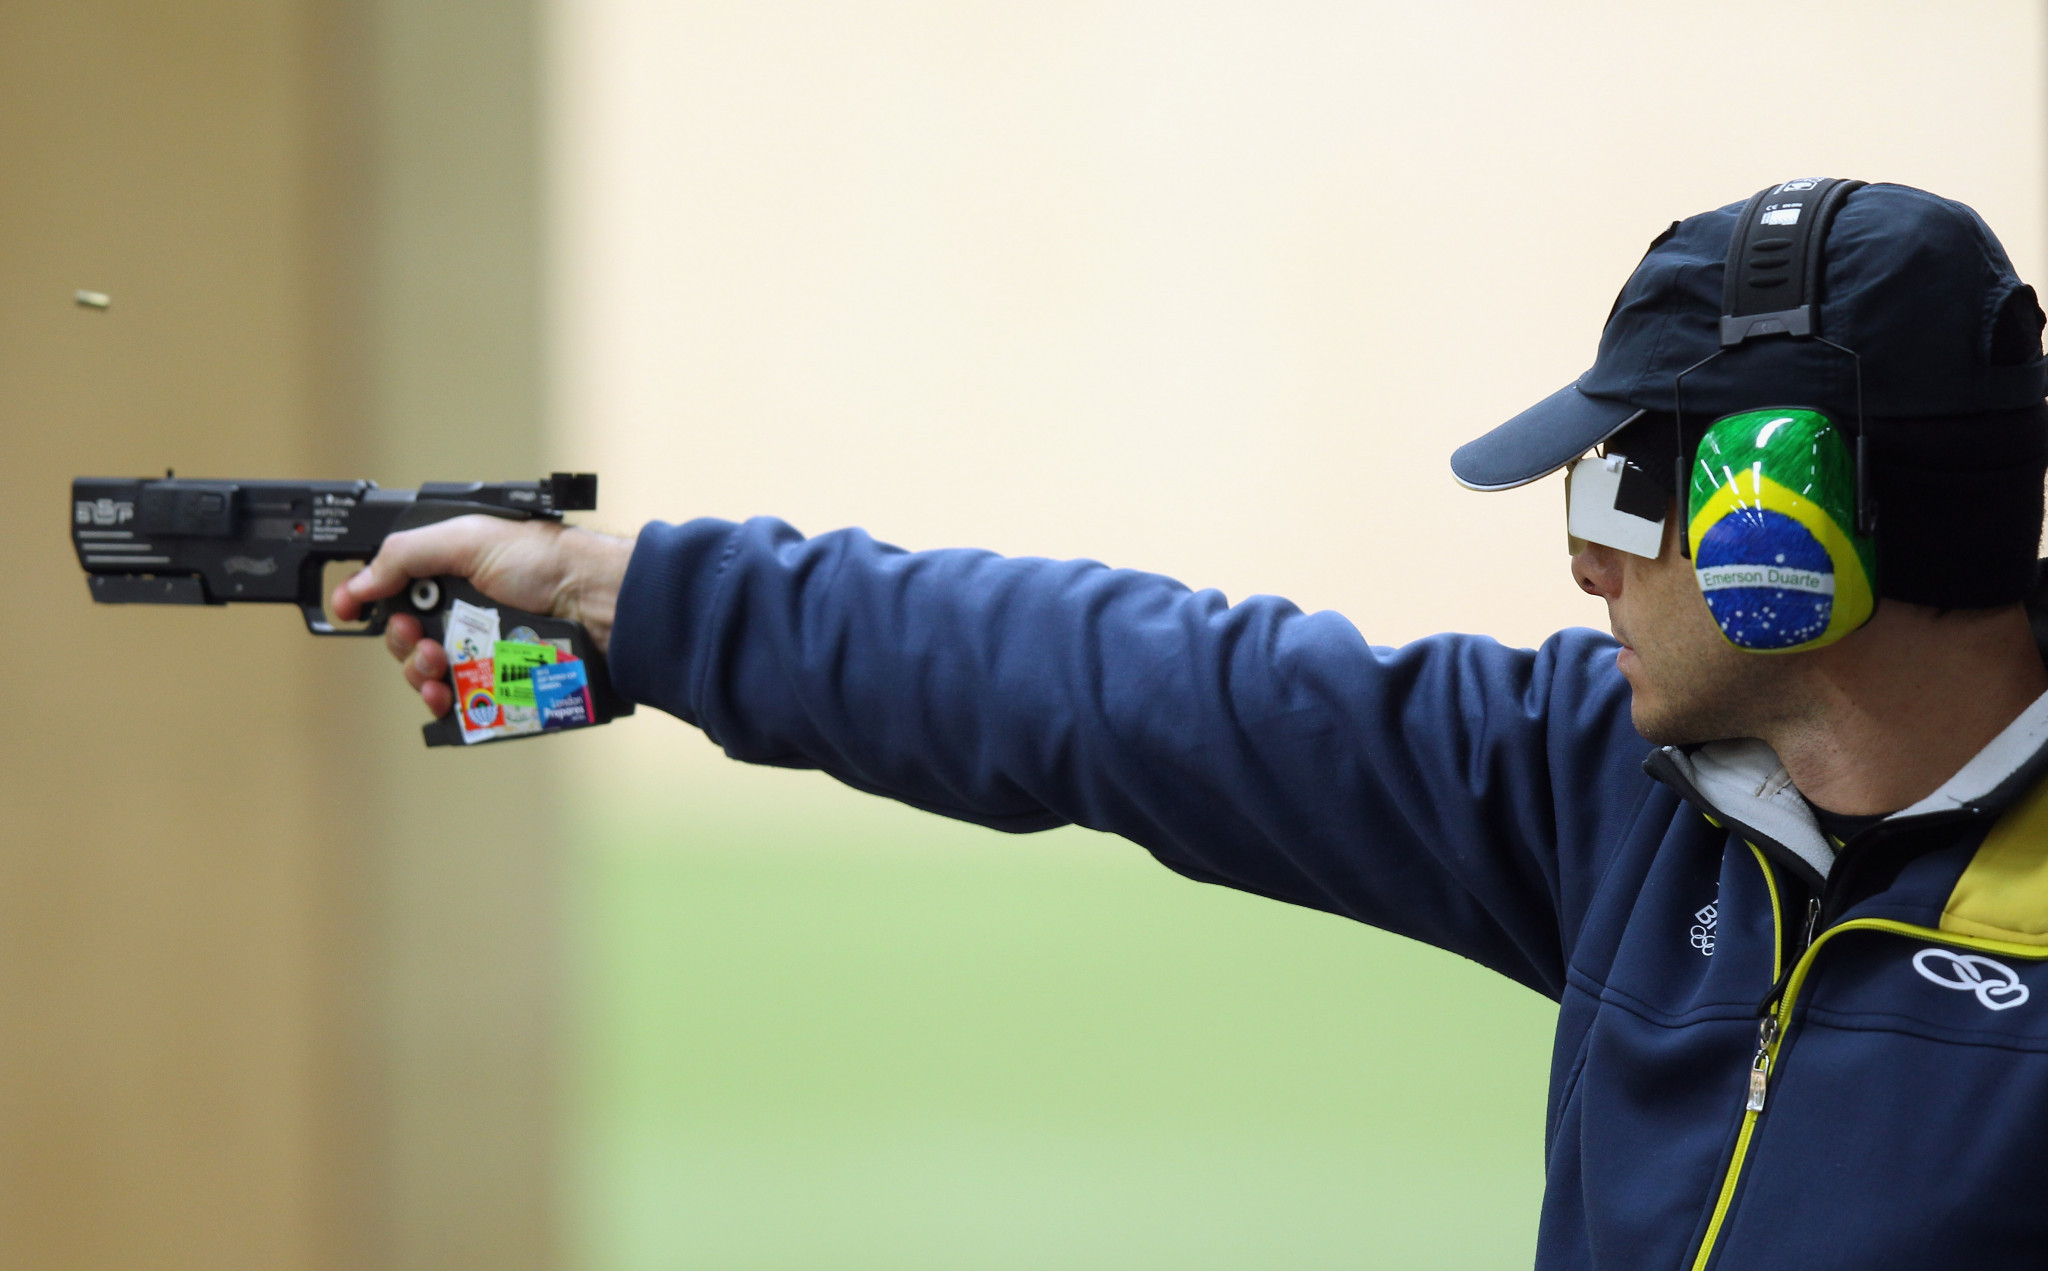 Brazilian and British teams in quarantine ahead of spectator-free ISSF World Cup in New Delhi